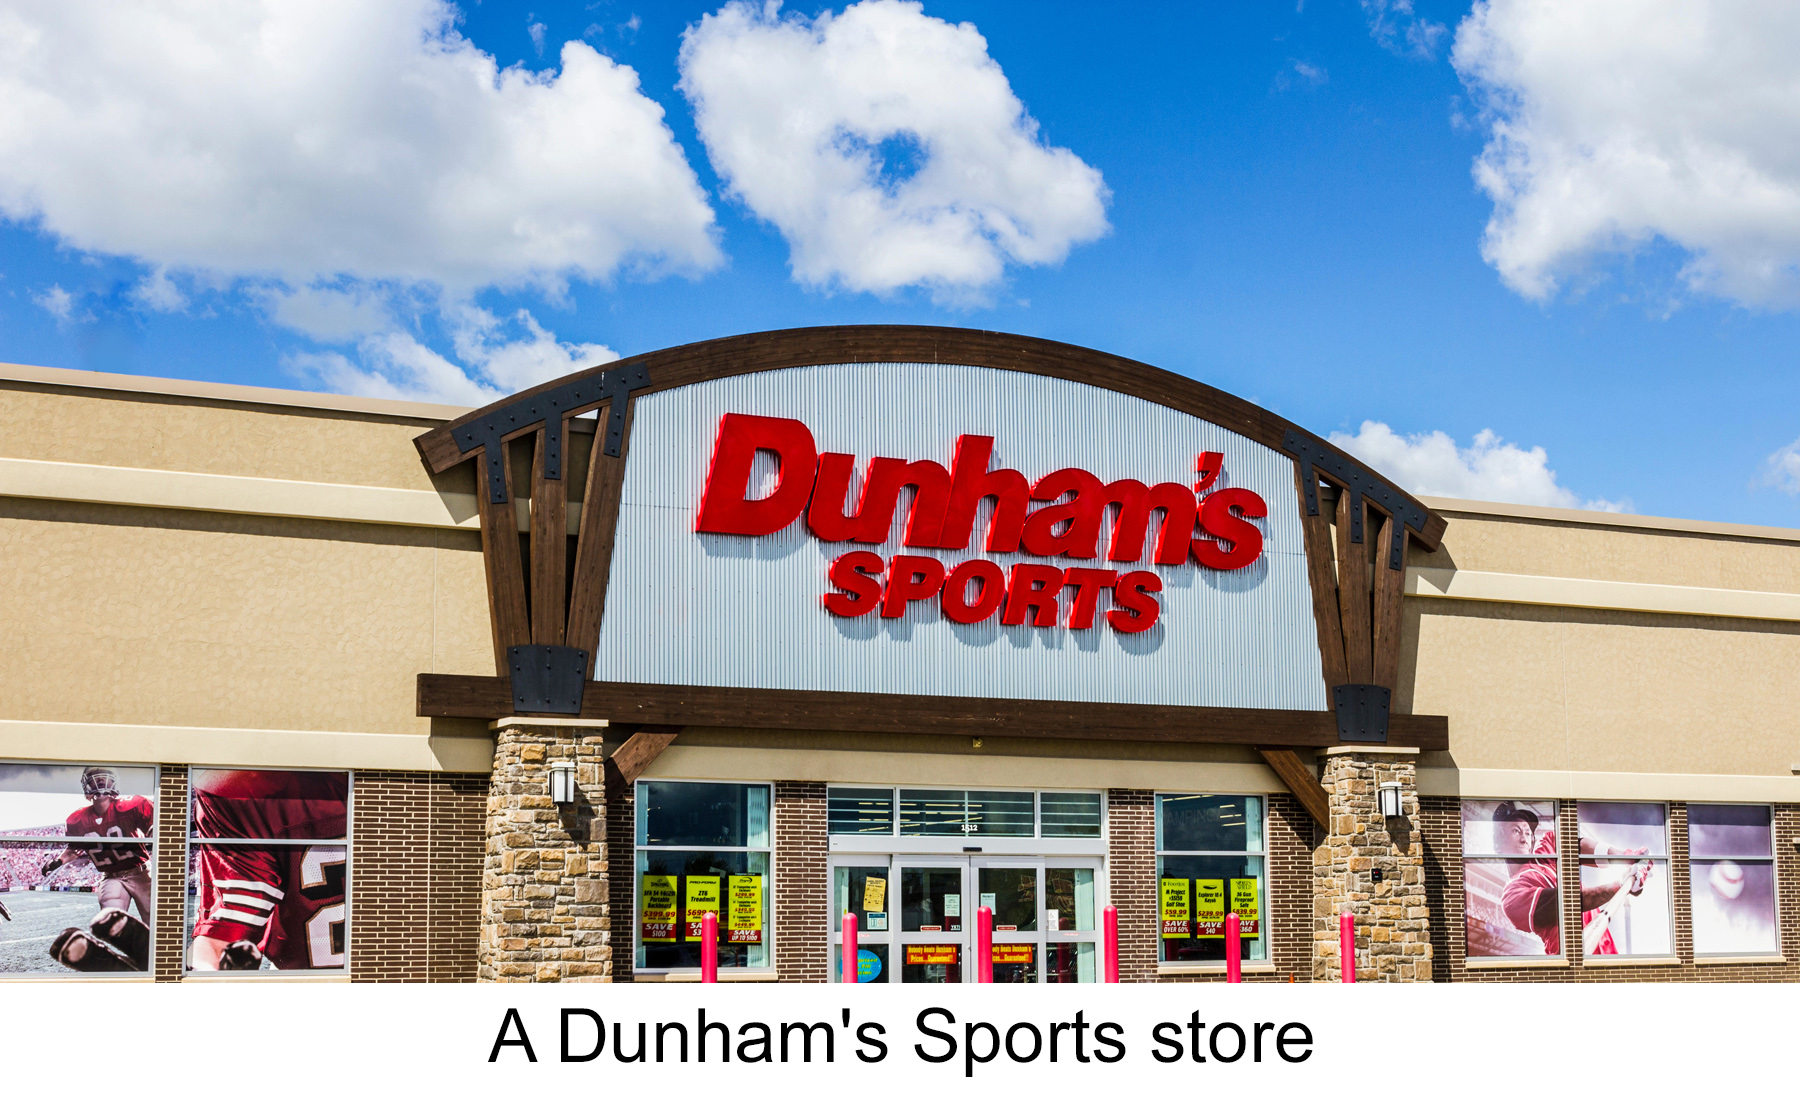 8ec31524b3a Dunham's Sports Coming to Fairlane Village Mall in Pottsville, Pa ...